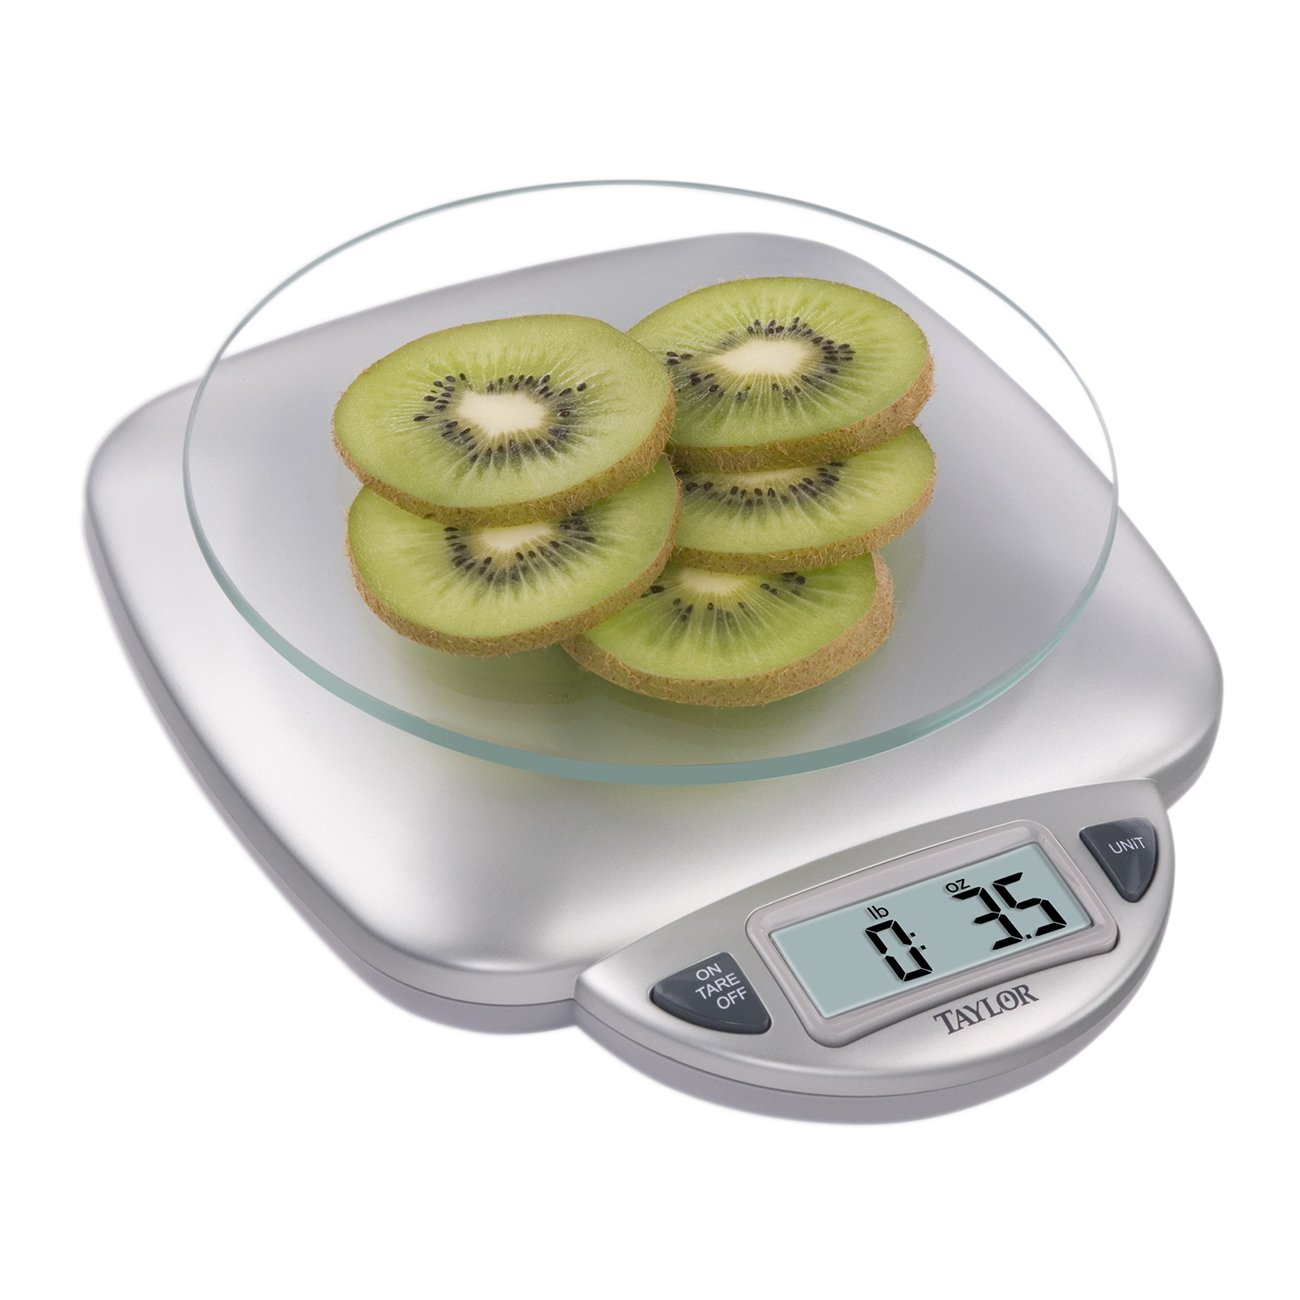 Amazon.com: Taylor Precision Products Digital Food Scale: Digital Kitchen  Scales: Kitchen U0026 Dining